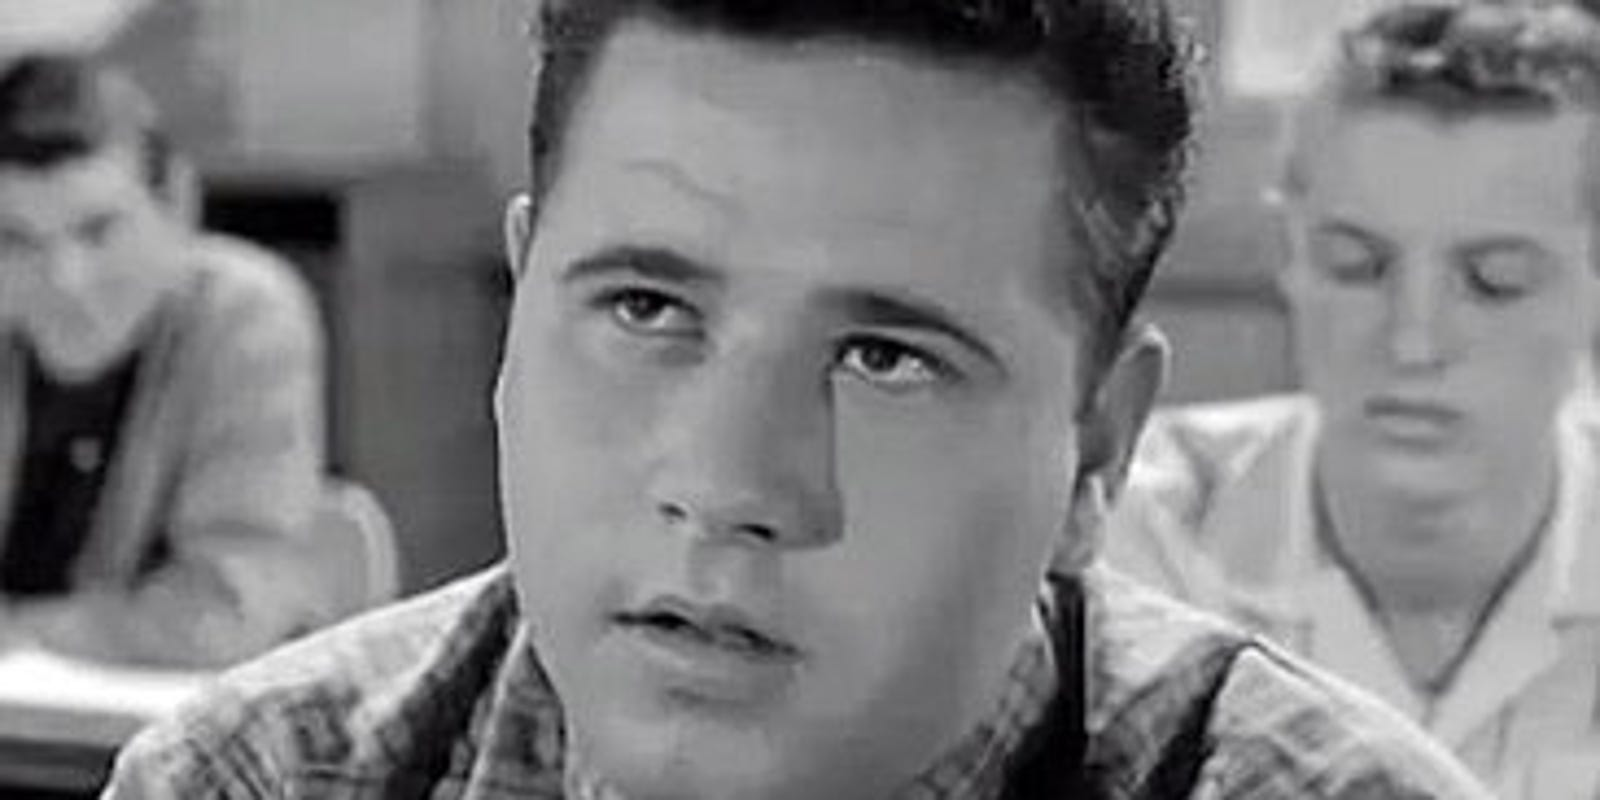 Eddie Haskell Quotes Leave It To Beaver's' Lumpy Rutherford Dies